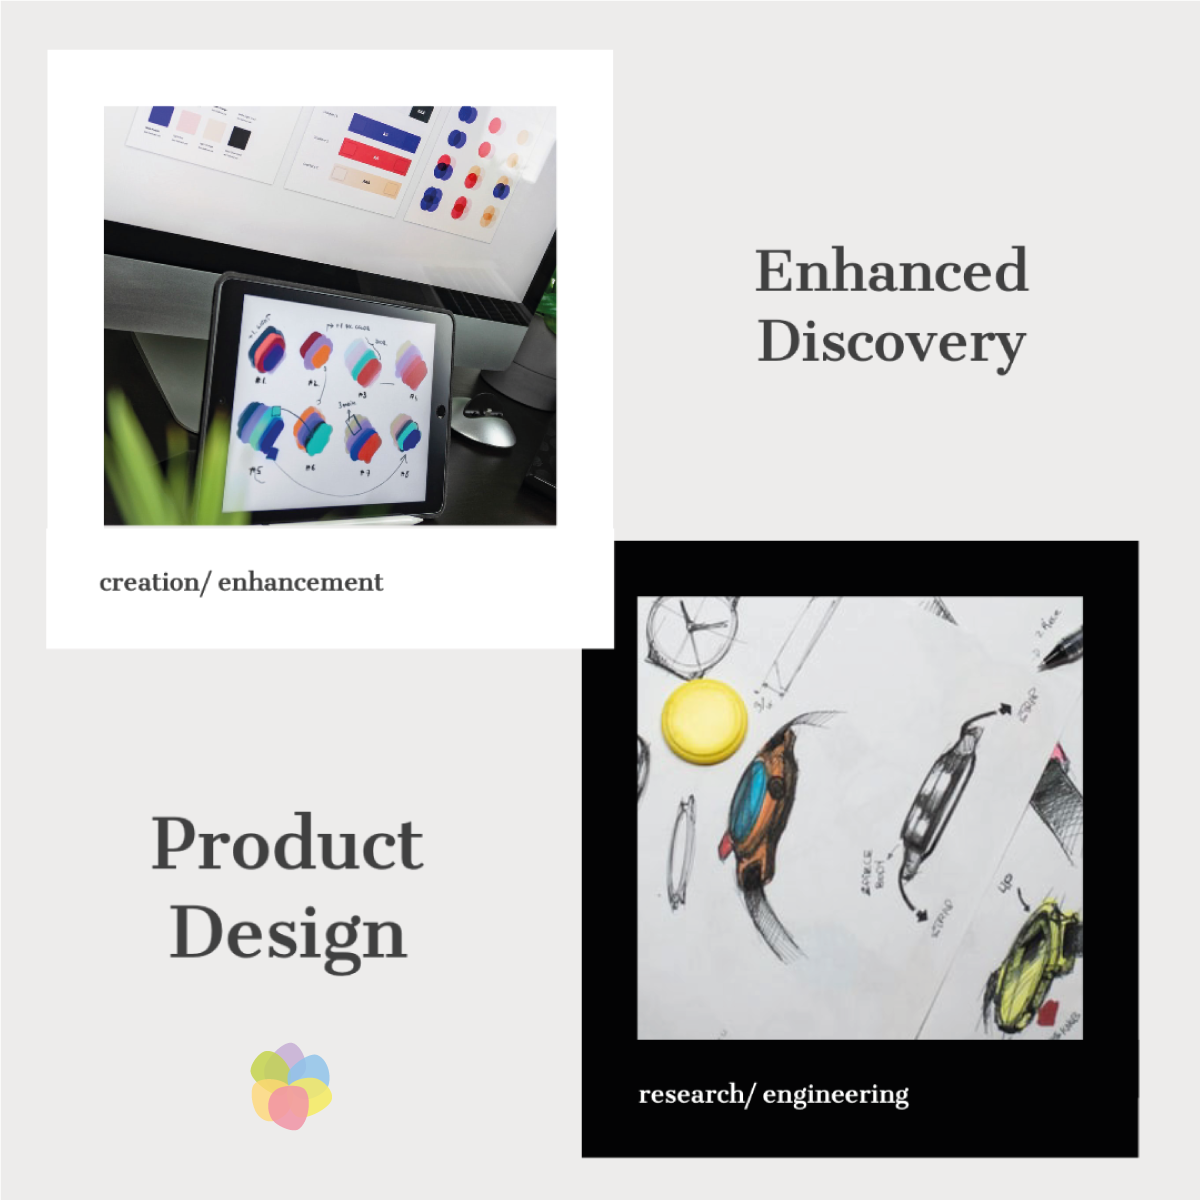 Fascination about the look, feel and functionality of product design gives us an edge. Let's talk! #OpenForBusiness  #ProductDesign #ProductMarketing #Strategy #Innovation #Research #Marketing #Advertising #AdvertisingIndia #AdvertisingLife #Huddlers #WeHuddle #HuddlersOriginalpic.twitter.com/kyhXPH77ip